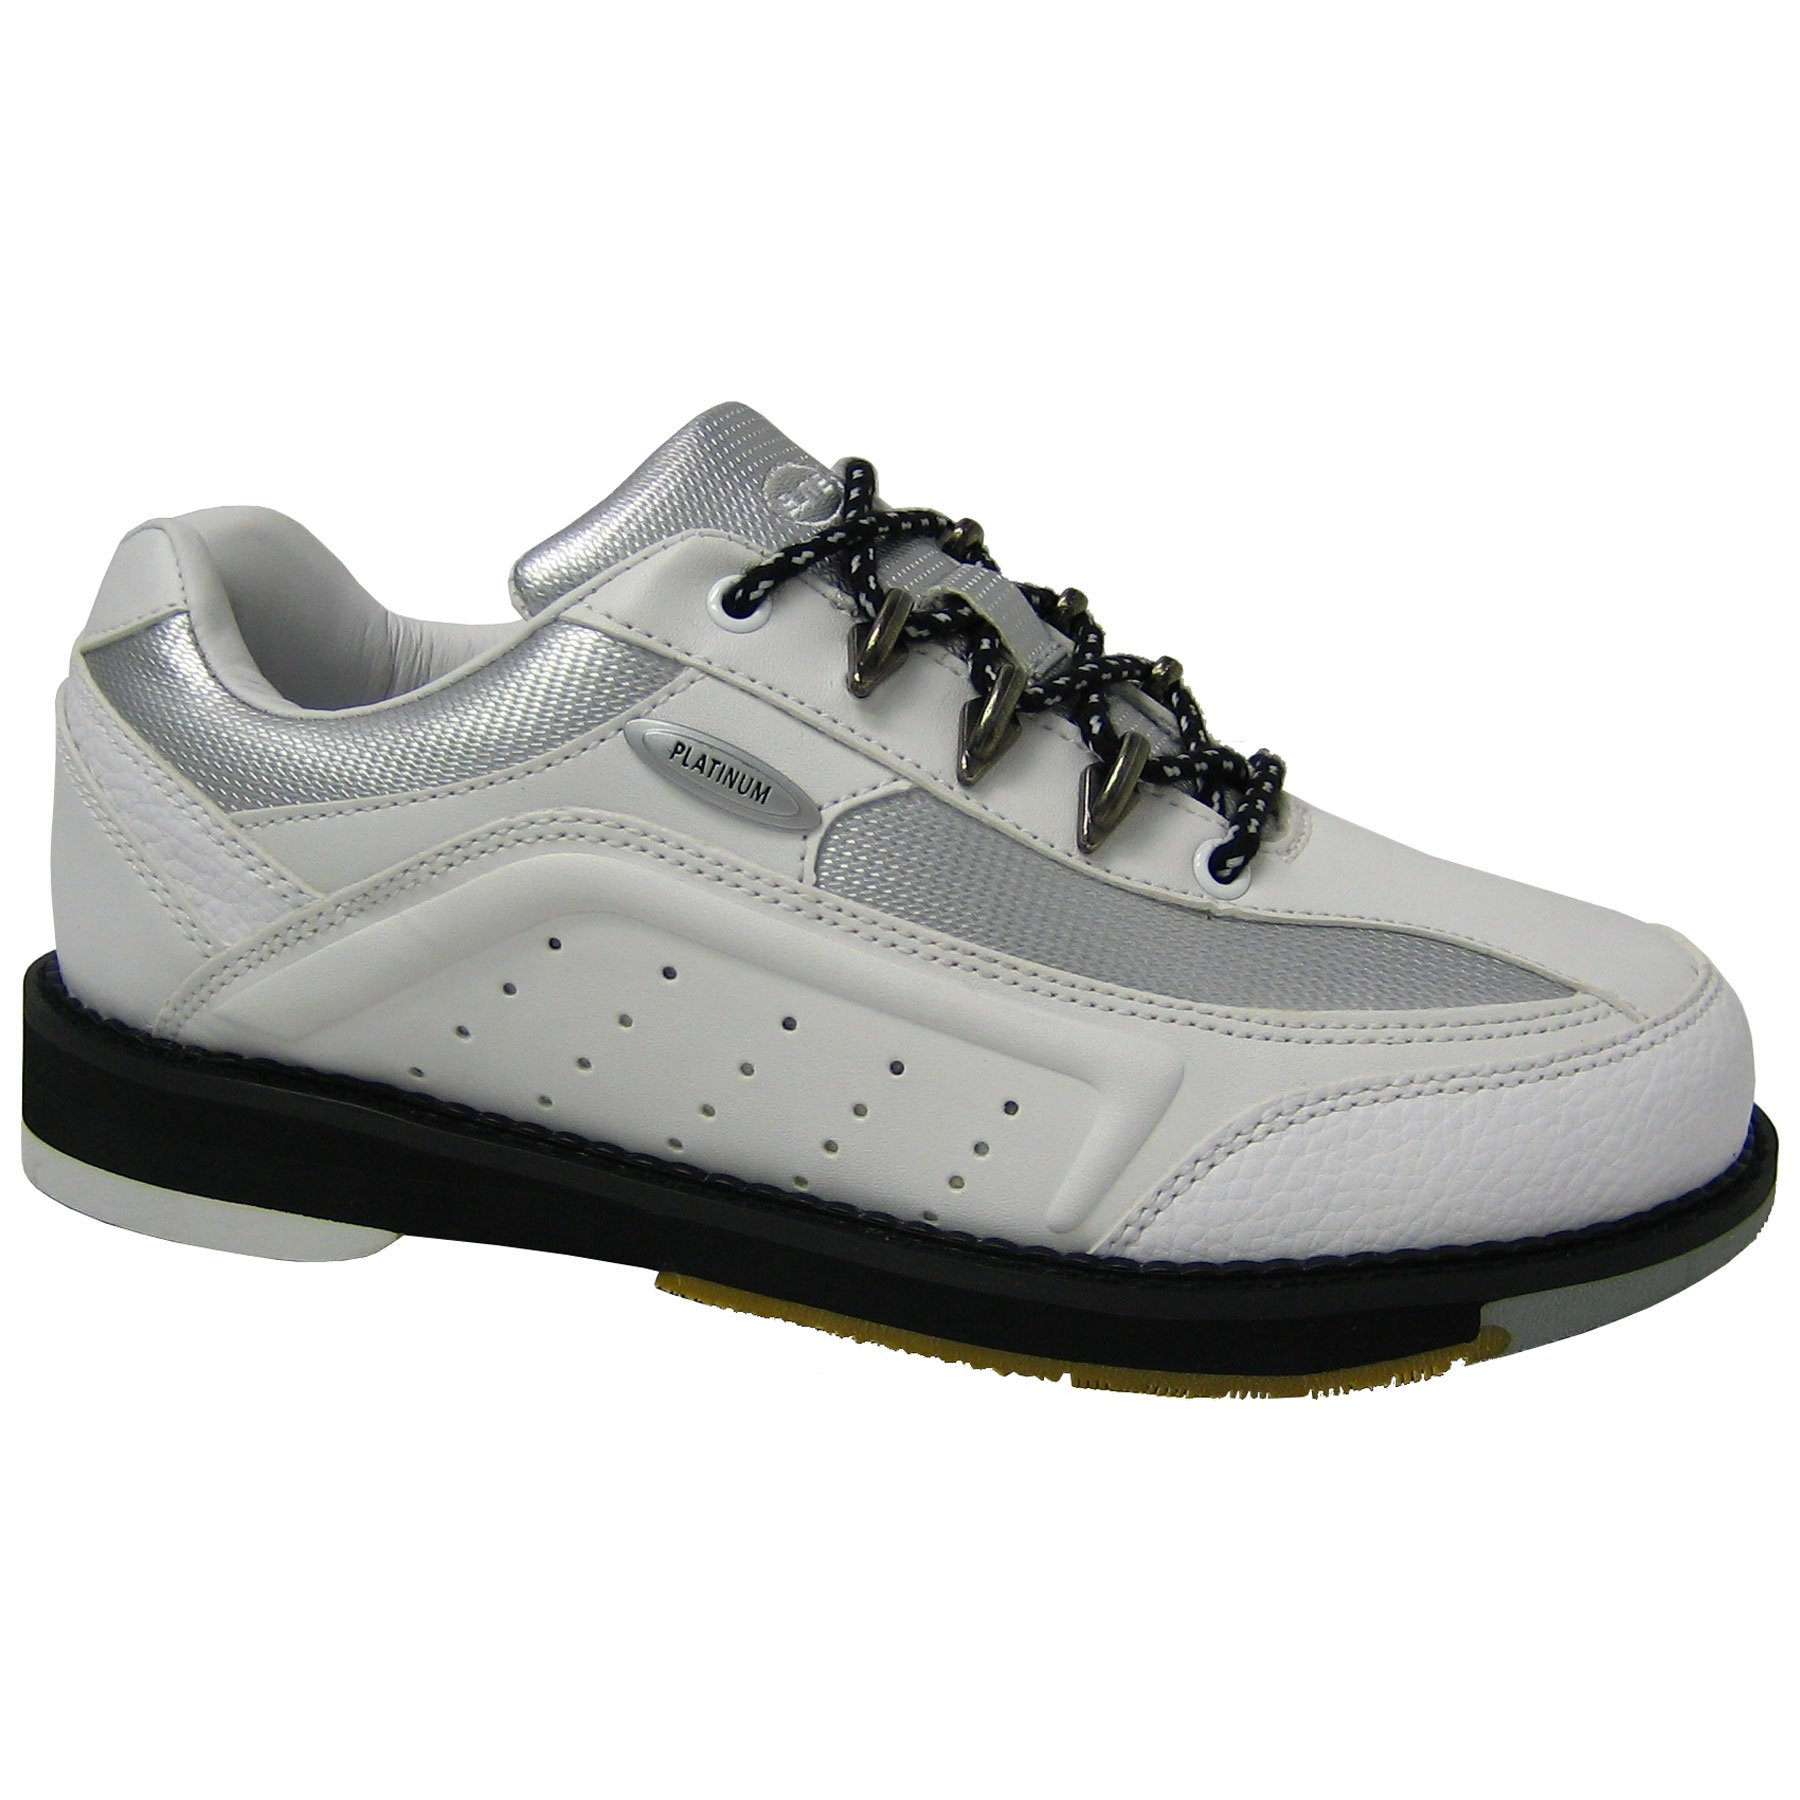 Elite Platinum White Right Hand Bowling Shoes - Womens 7